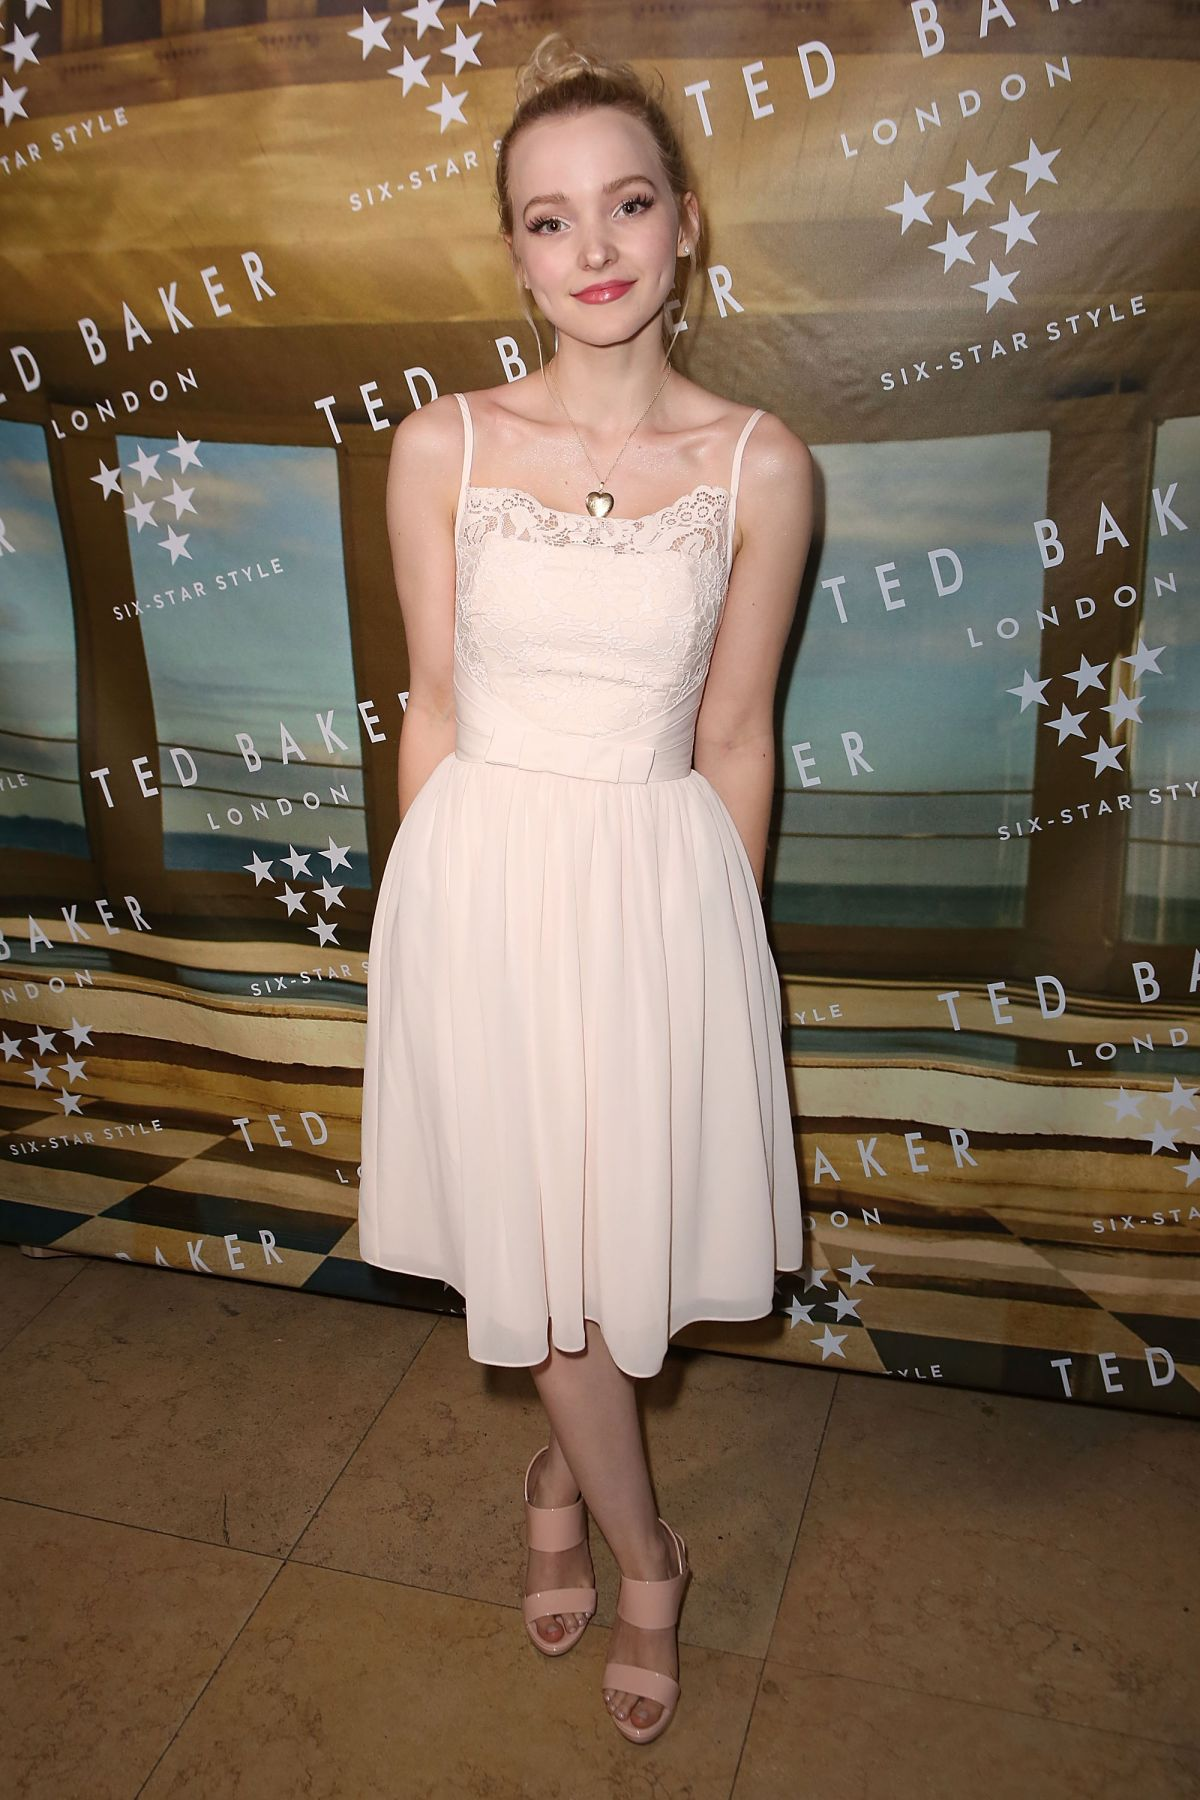 DOVE CAMERON at Ted Baker London ss